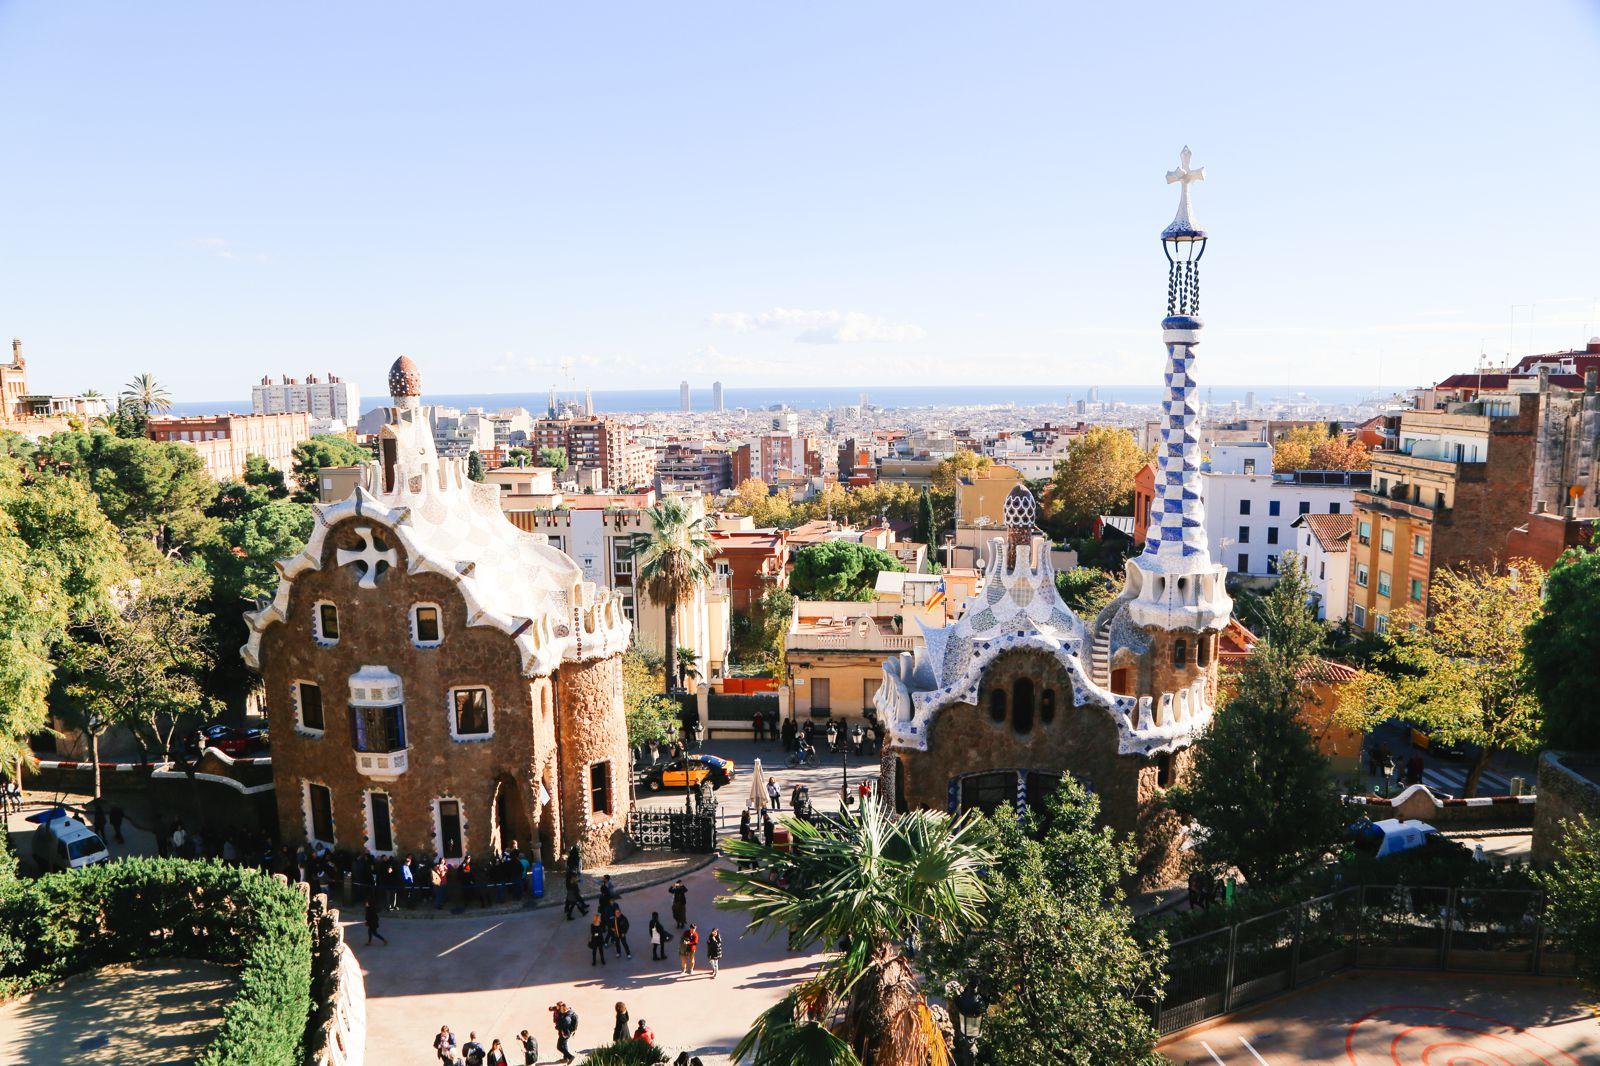 A Local's Guide To Barcelona: 27 Things You Really Need To Know About Visiting Barcelona